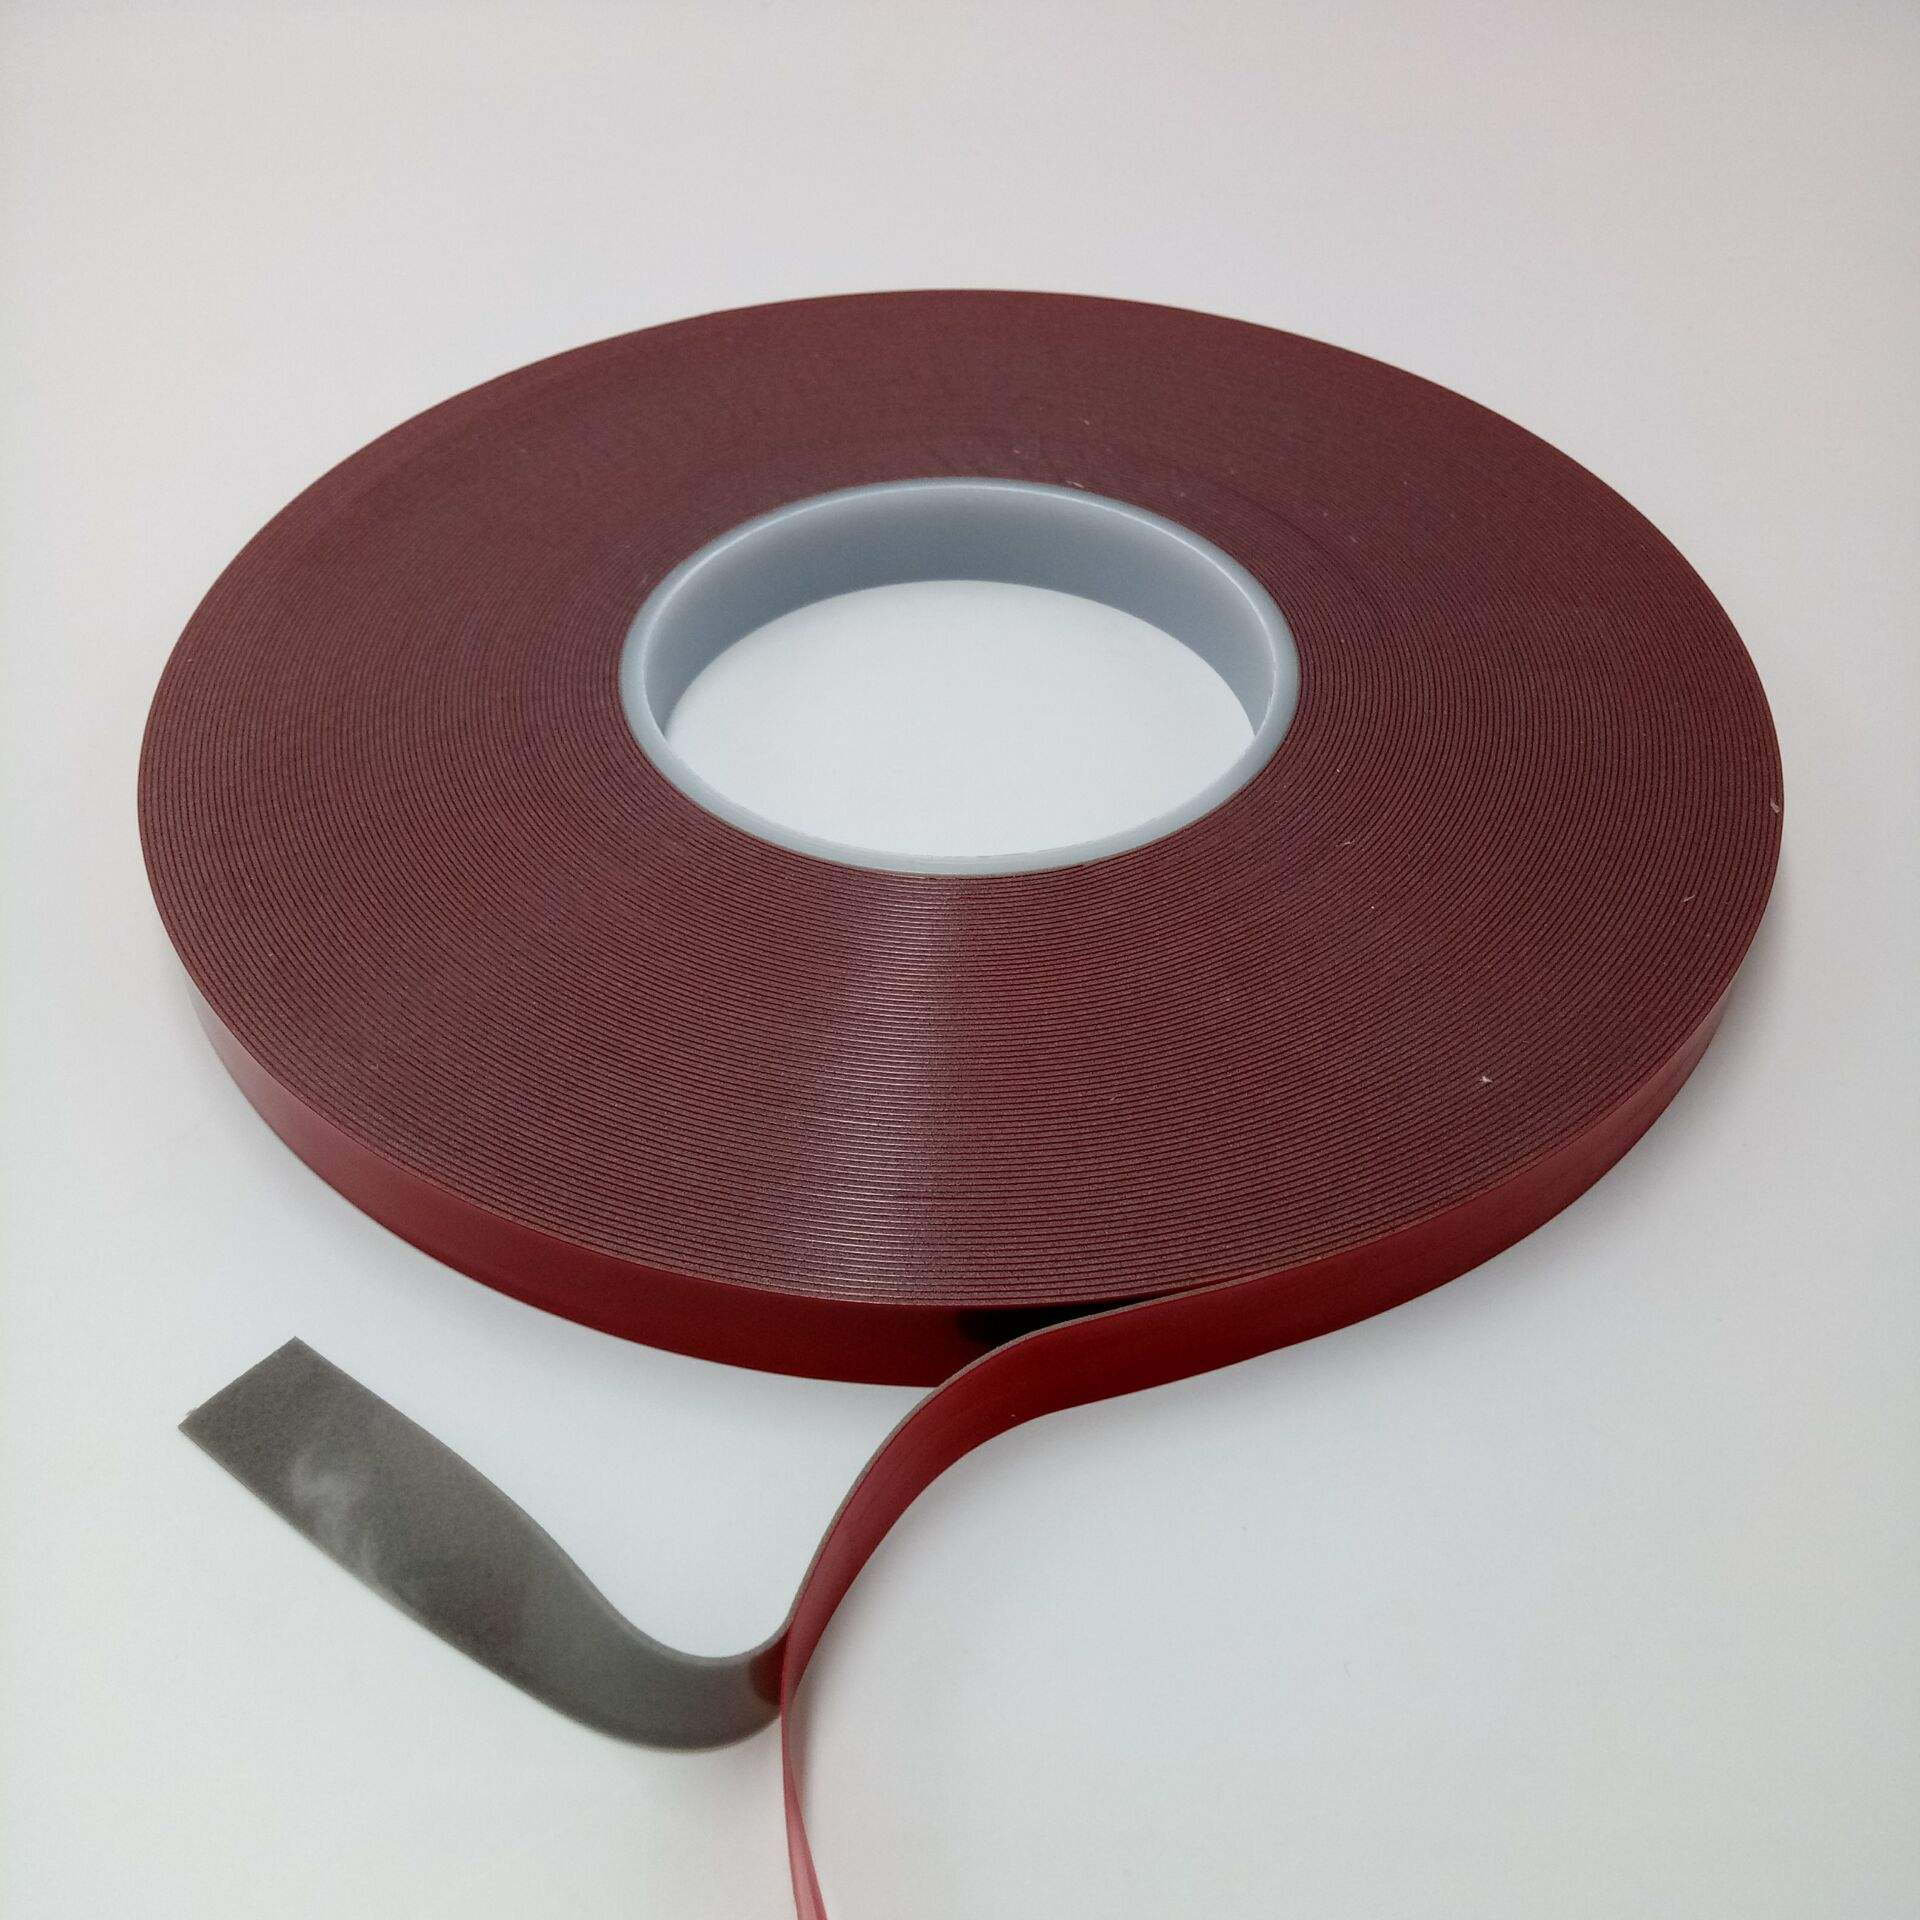 Heat Resistant Very High Bond Double Sided Vhb Acoustic Foam Double Sided Adhesive Tape